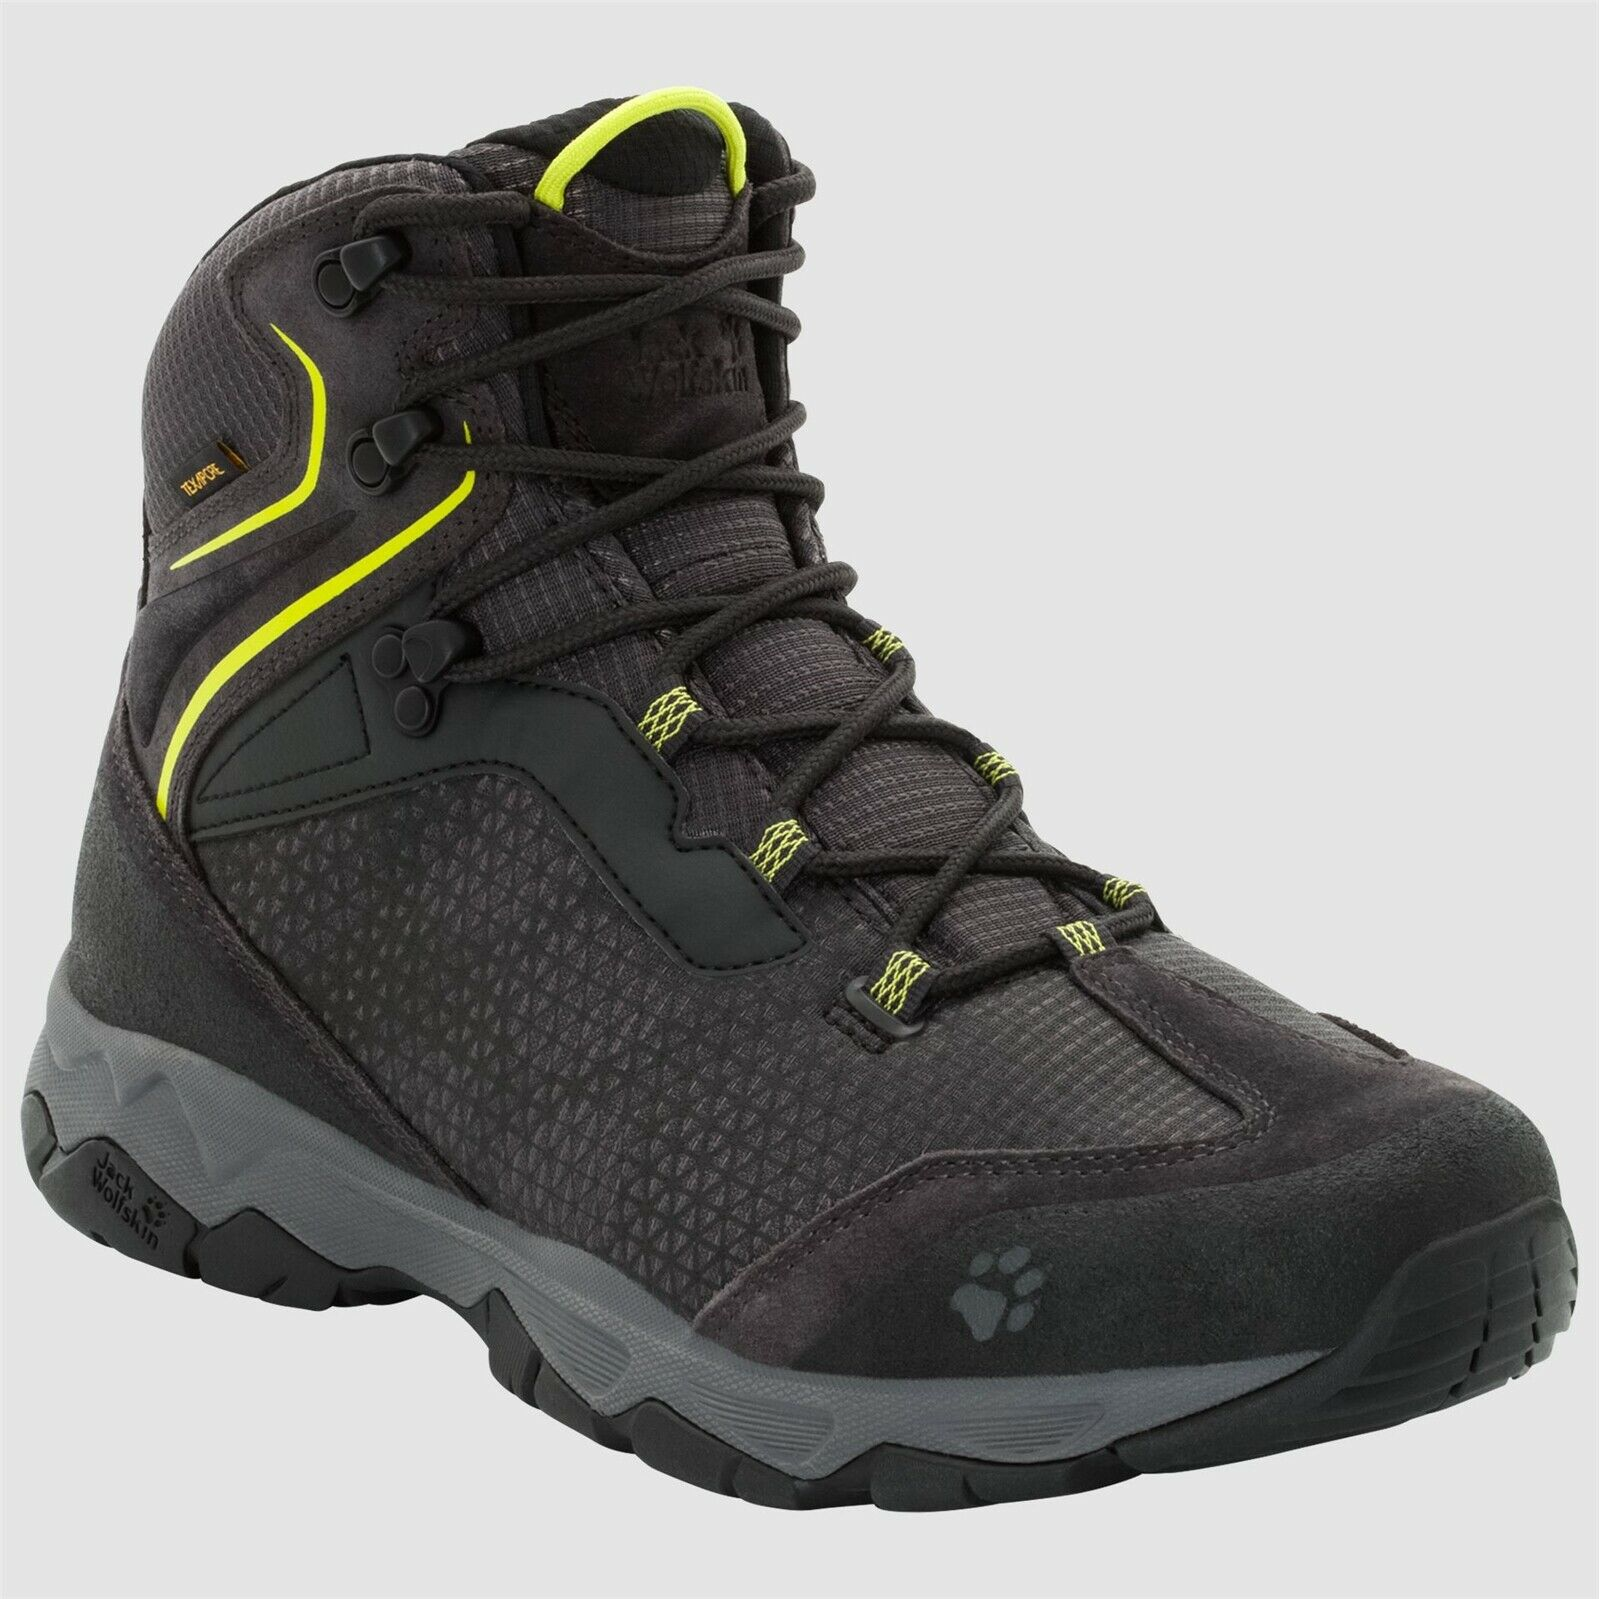 Jack Wolfskin Rock Hunter texapore Low Men = 45 zapatos caballero Lime verde